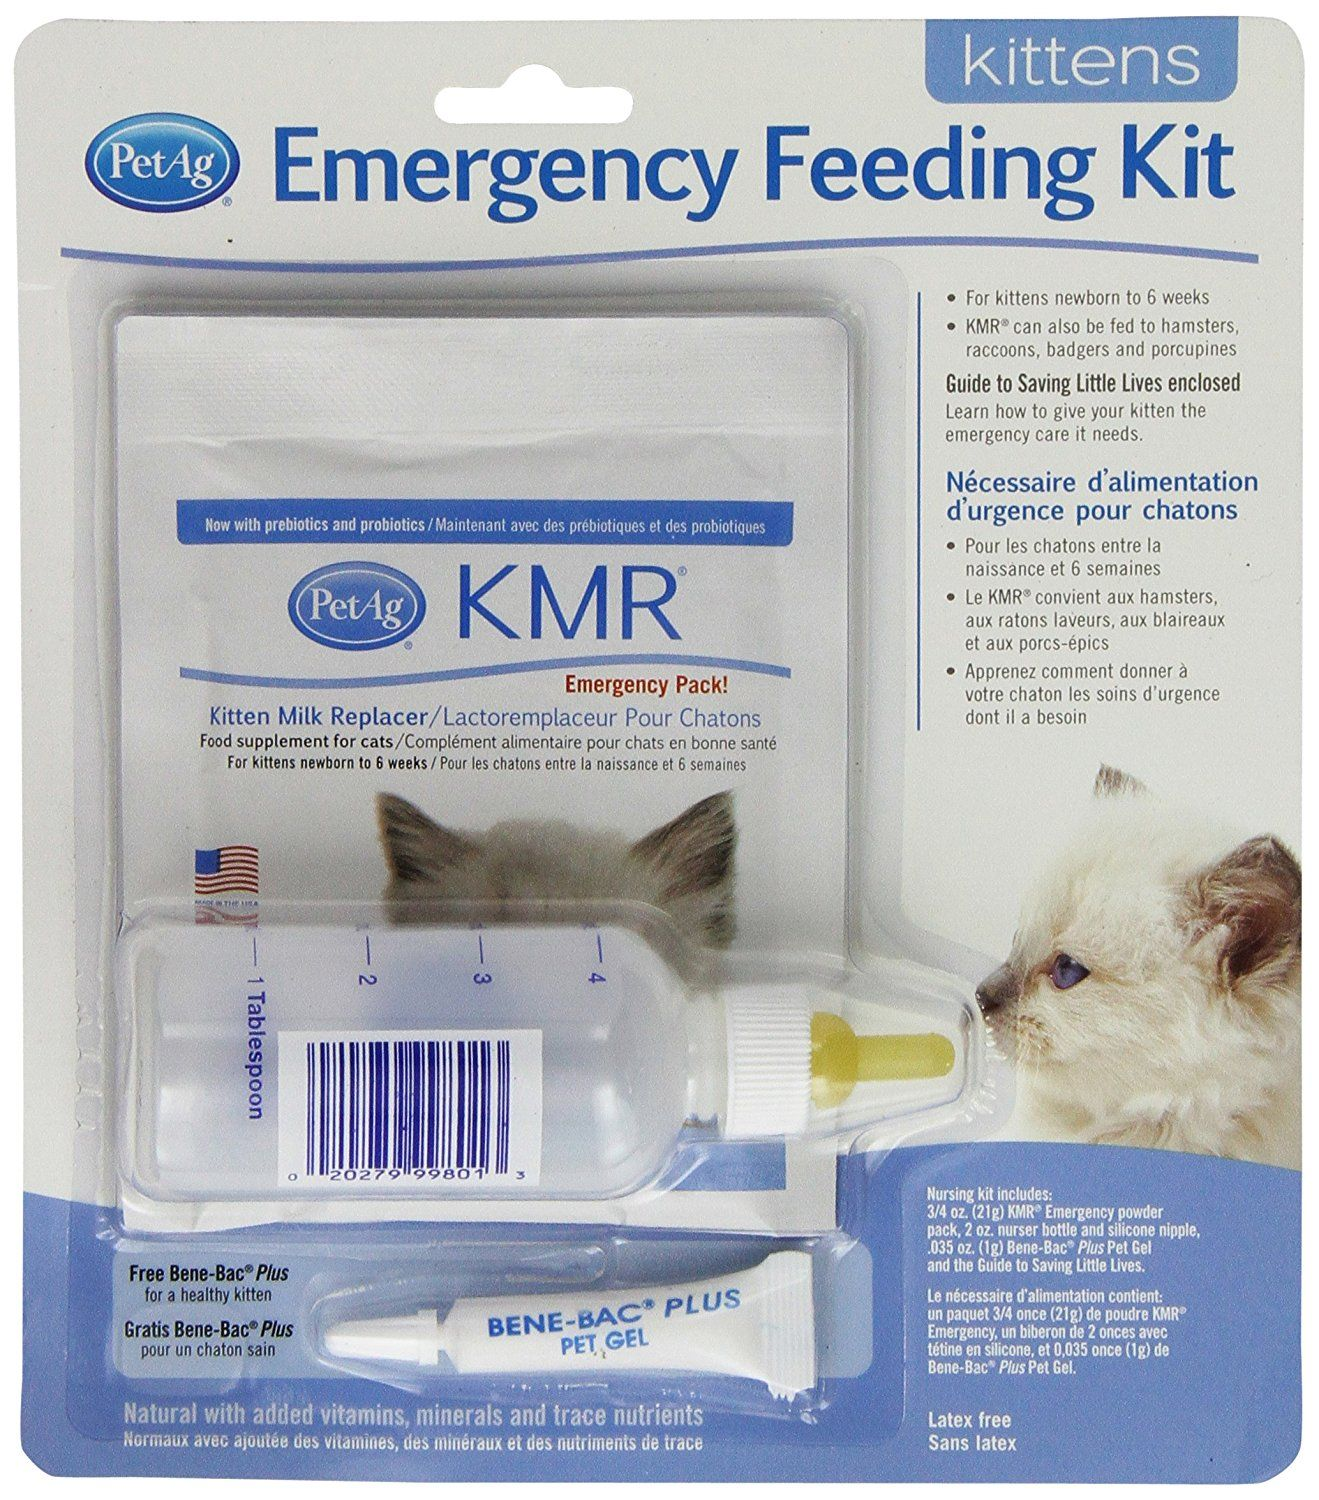 Catag Kitten Milk Replacer Kmr Emergency Feeding Kit Review More Details Here Cat Health And Supplies Nursing Supplies Cats Cat Feeding